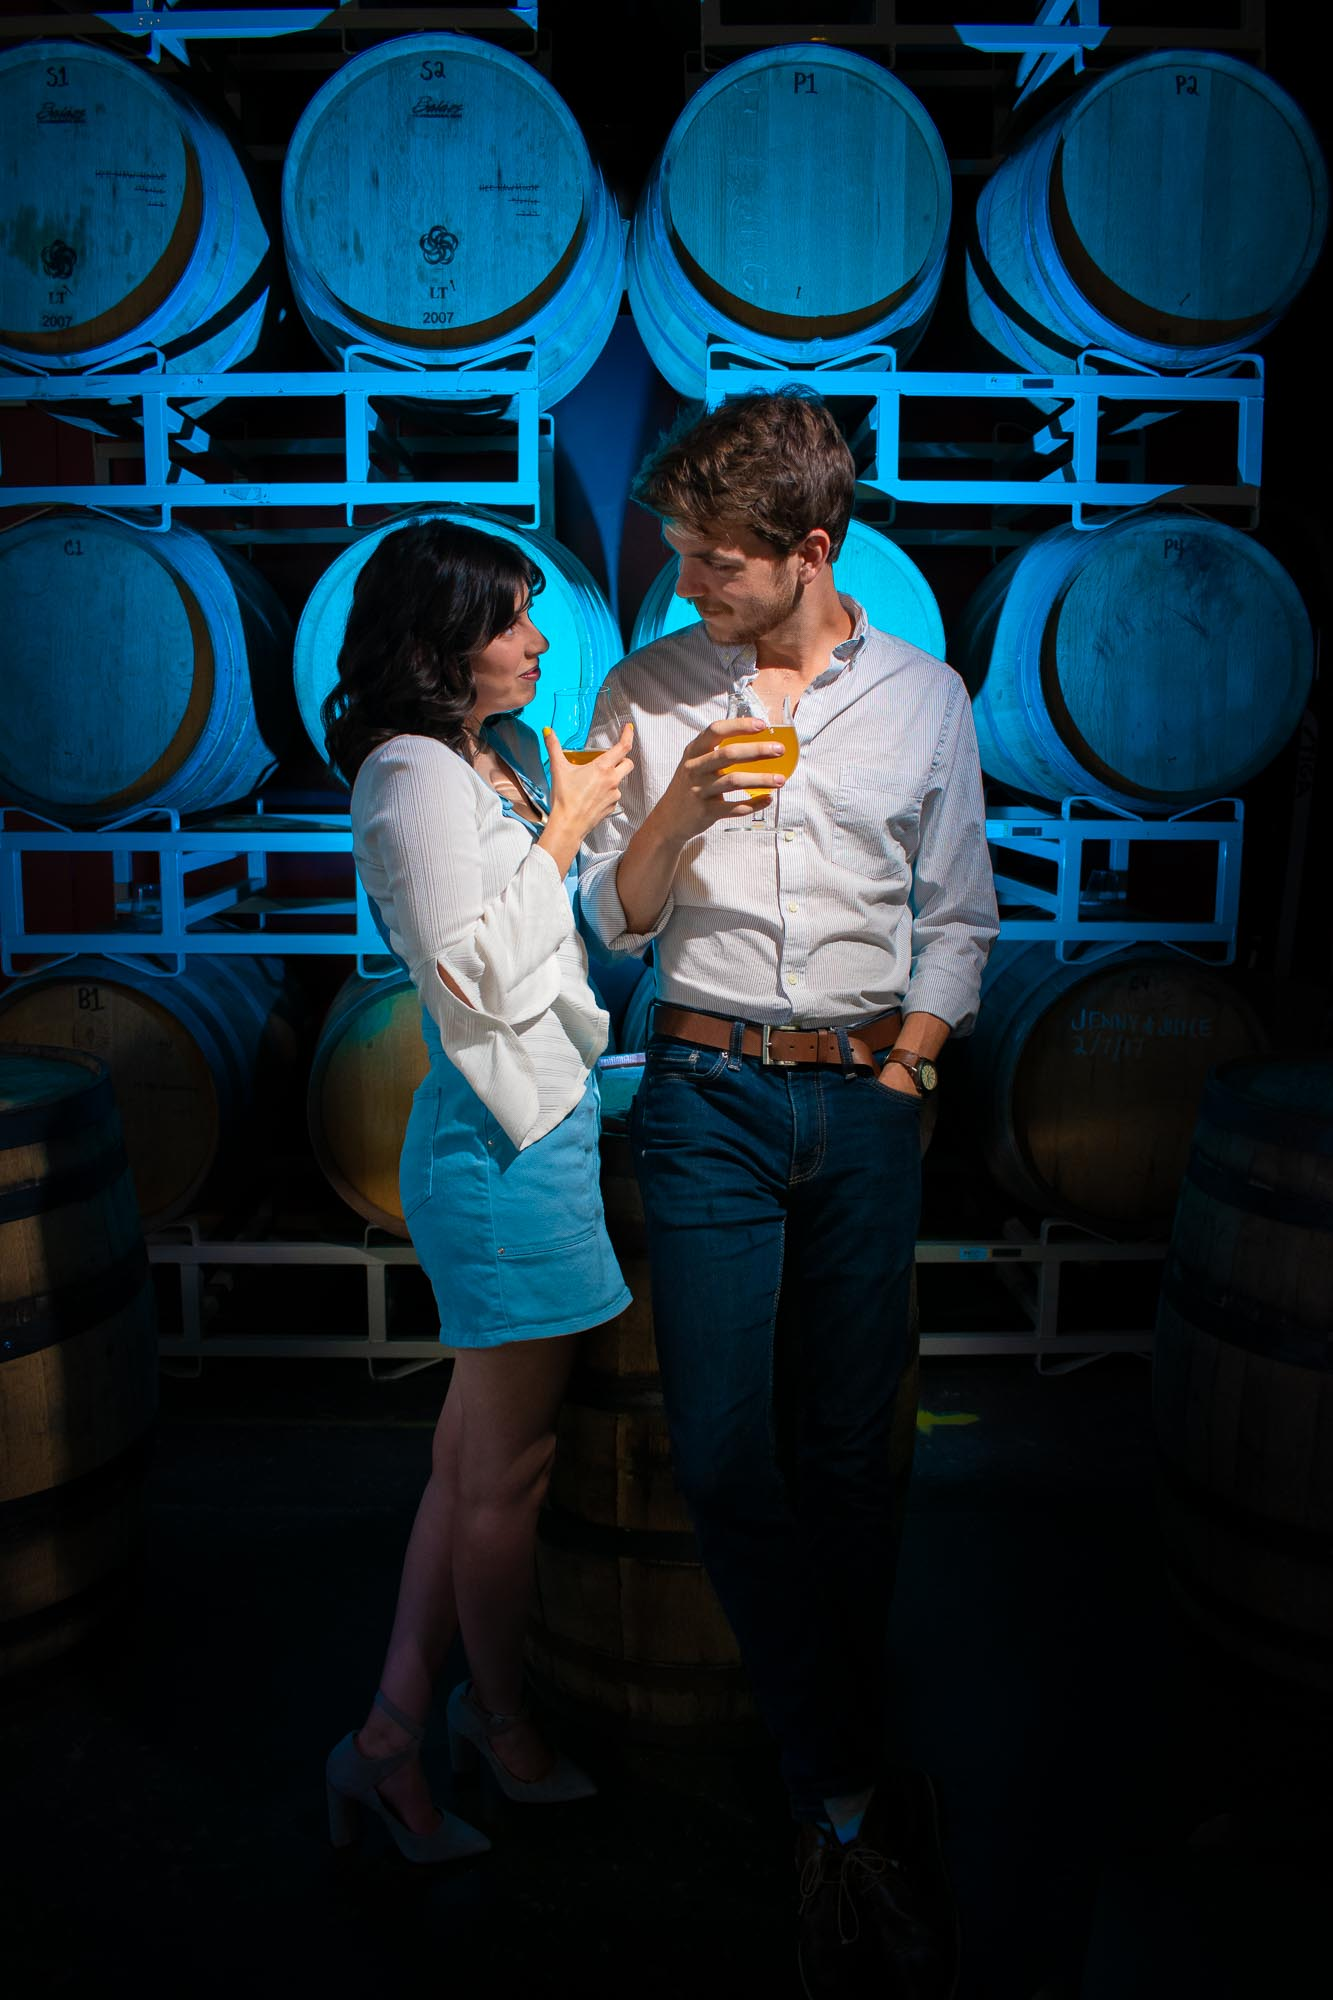 Charlotte Noda craft beer engagement session-3.jpg